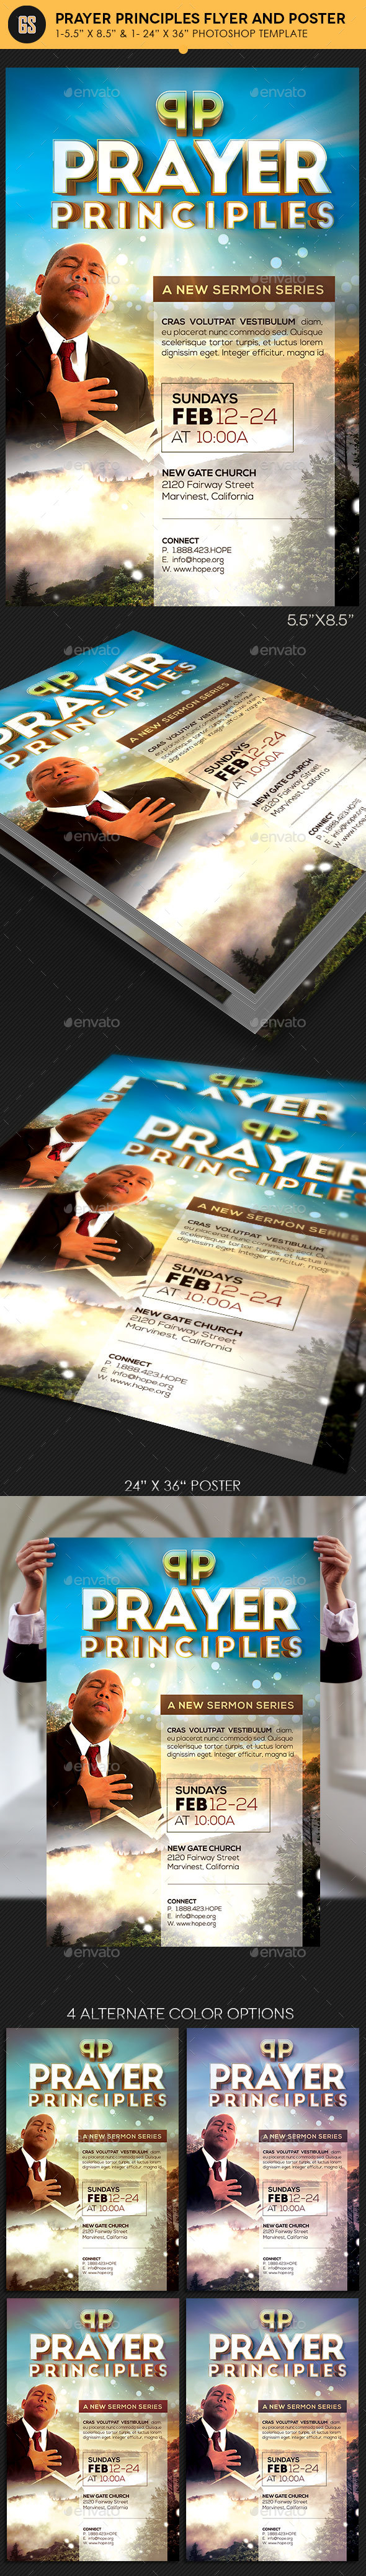 Prayer Principles Flyer Poster Template - Church Flyers